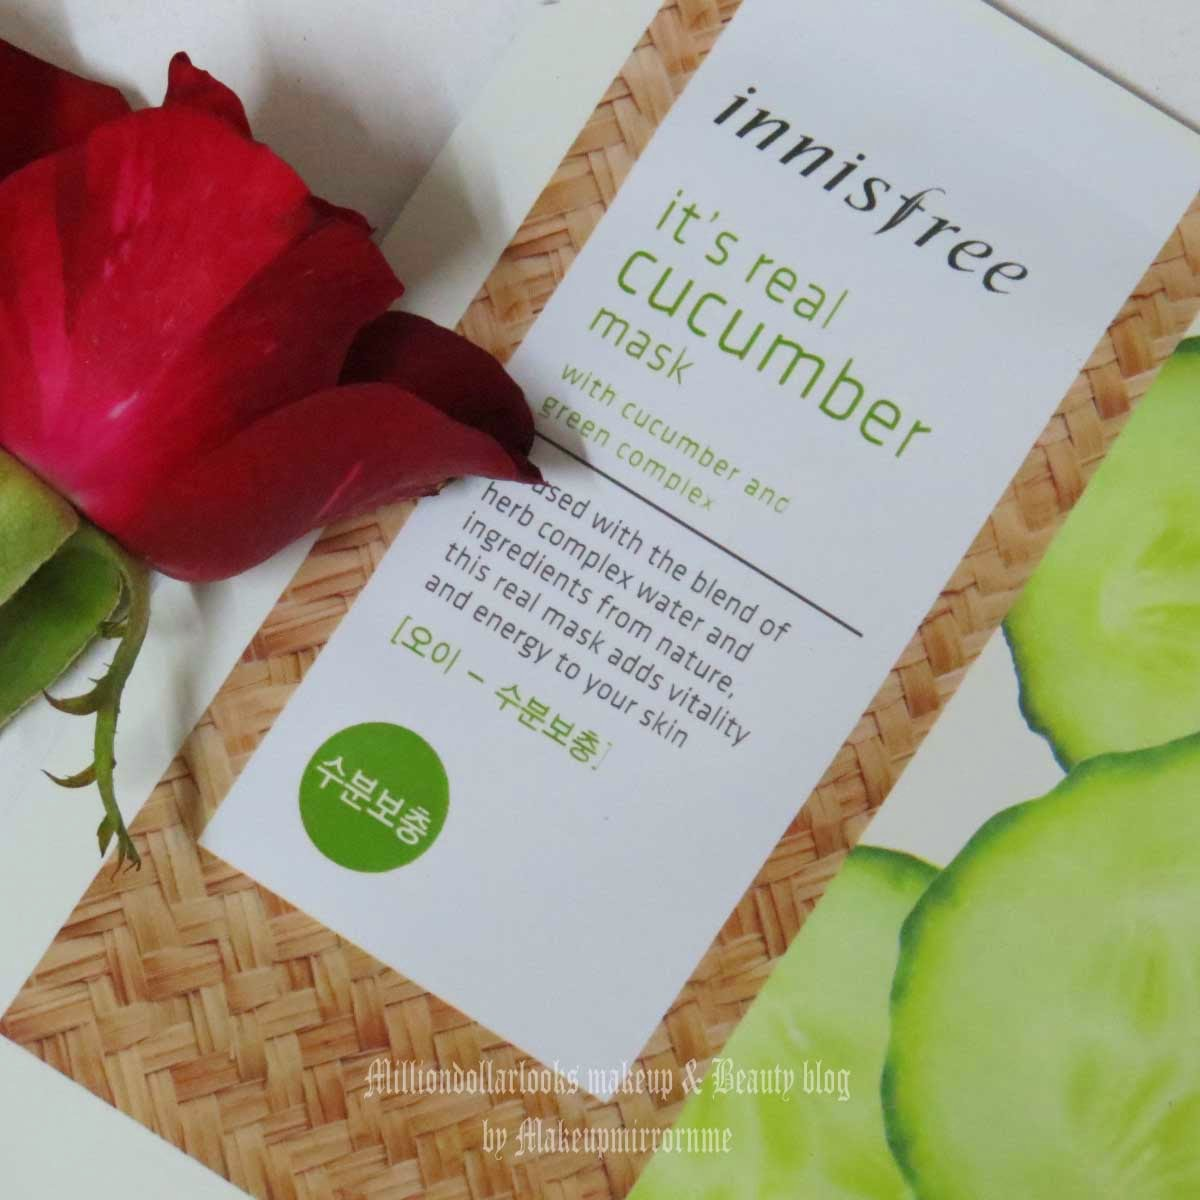 Innisfree It's Real Cucumber Mask Review & Pictures, Indian beauty bloggers, Top beauty blogs in India, MillionDollarLooks, Innisfree face mask review india, Innisfree face mask price in India, Innisfree review India, Cucumber face mask, Glowing skin, Face mask sheets available in India, Korean skincare brand, Korean face mask sheets available in India, Beauty bloggers India, Natural korean face sheet masks, Innisfree India